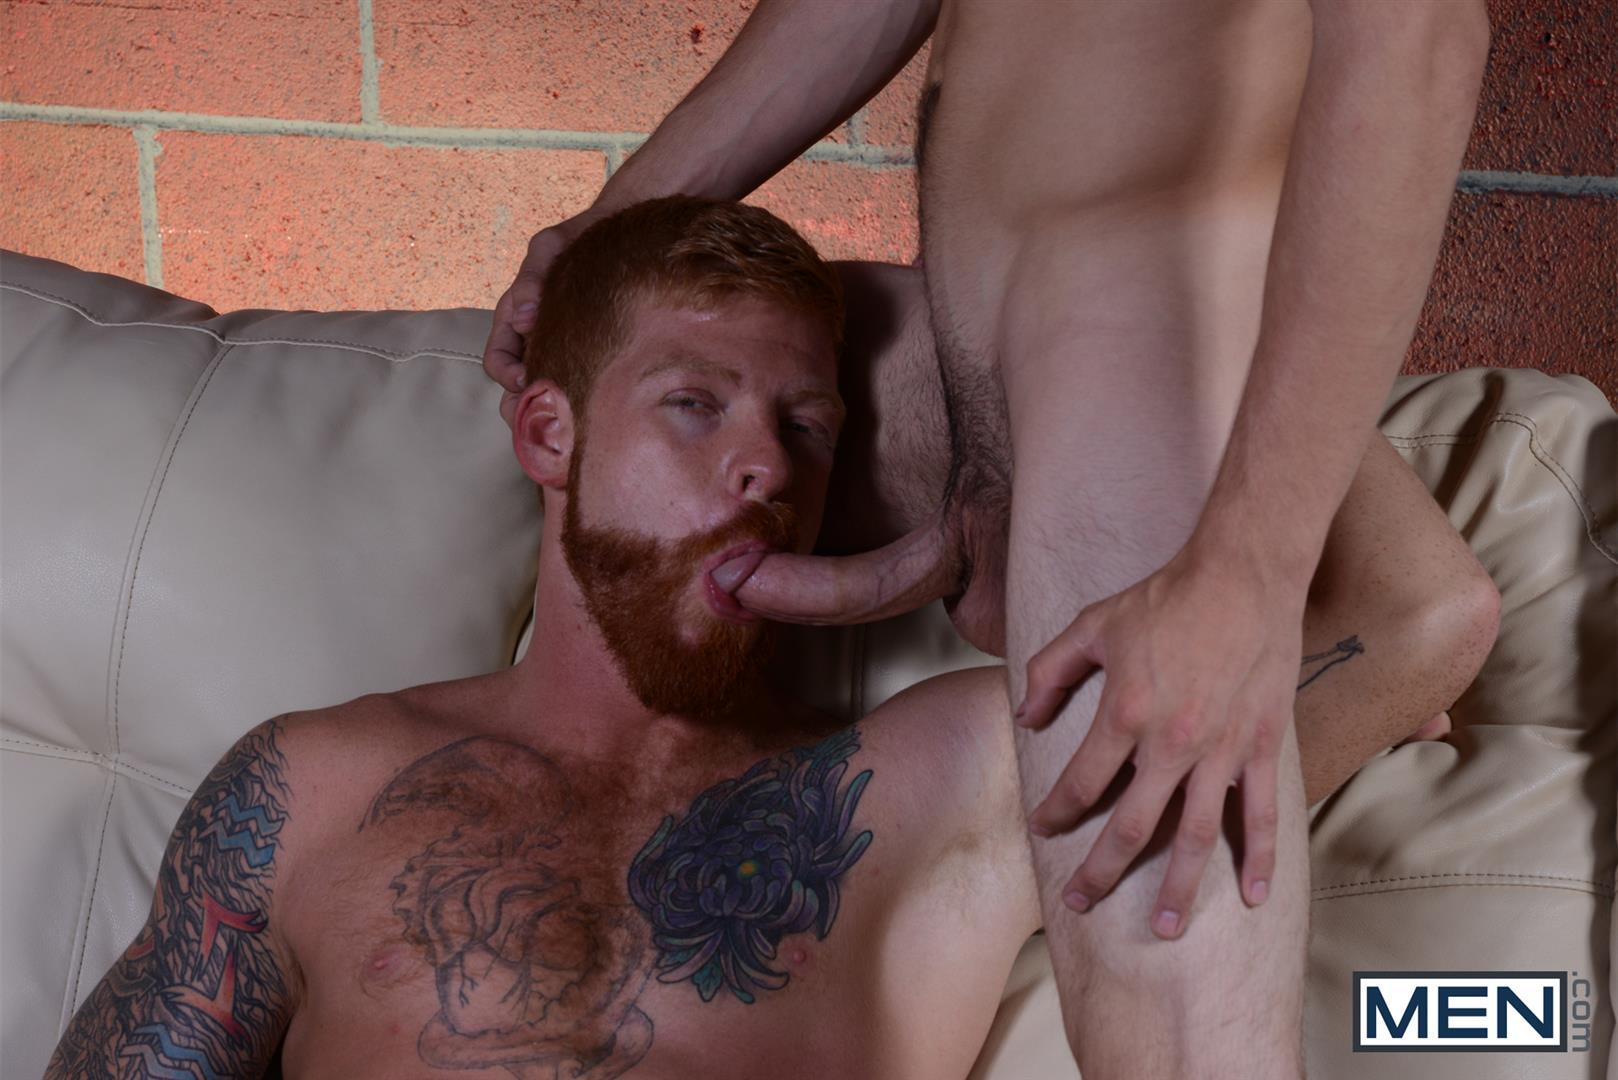 Men-Drill-My-Hole-Bennett-Anthony-and-Johnny-Rapid-Hairy-Redhead-Fucking-A-Twink-Amateur-Gay-Porn-08 Johnny Rapid Getting Fucked by Redhead Bennett Anthony